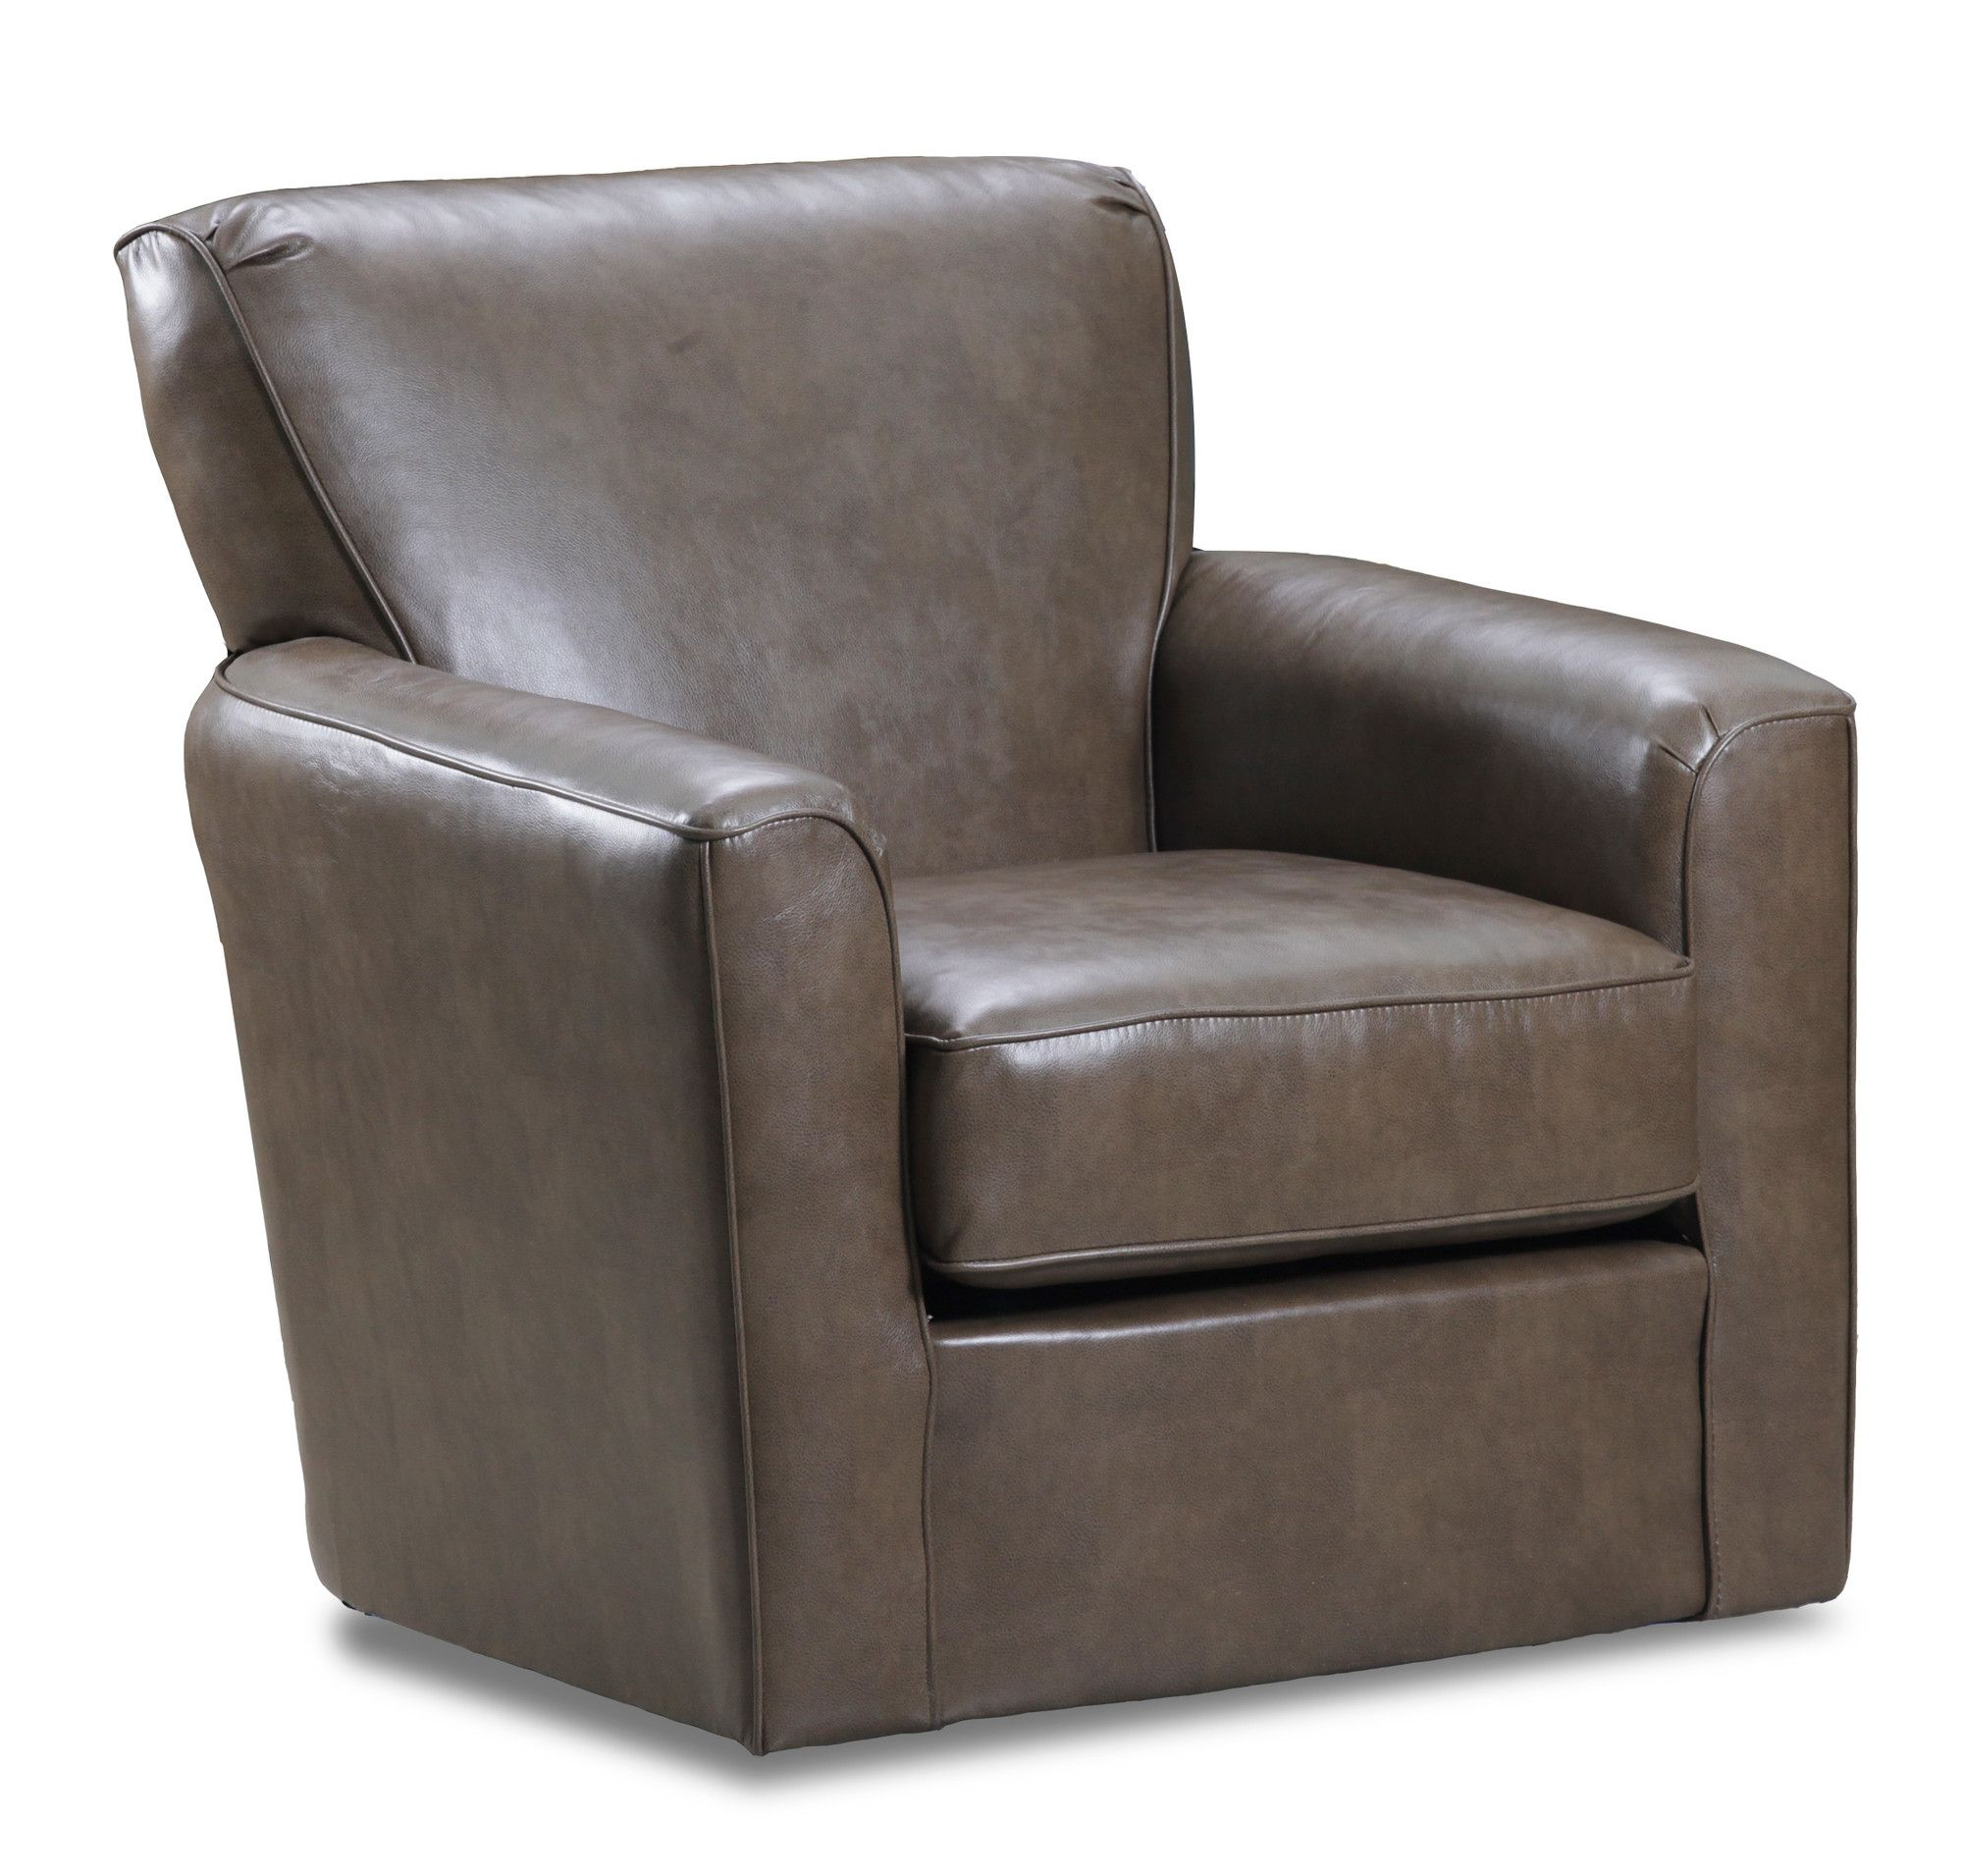 Simmons Upholstery Alice Swivel Barrel Chair | Products | Pinterest Regarding Devon Ii Swivel Accent Chairs (View 5 of 20)